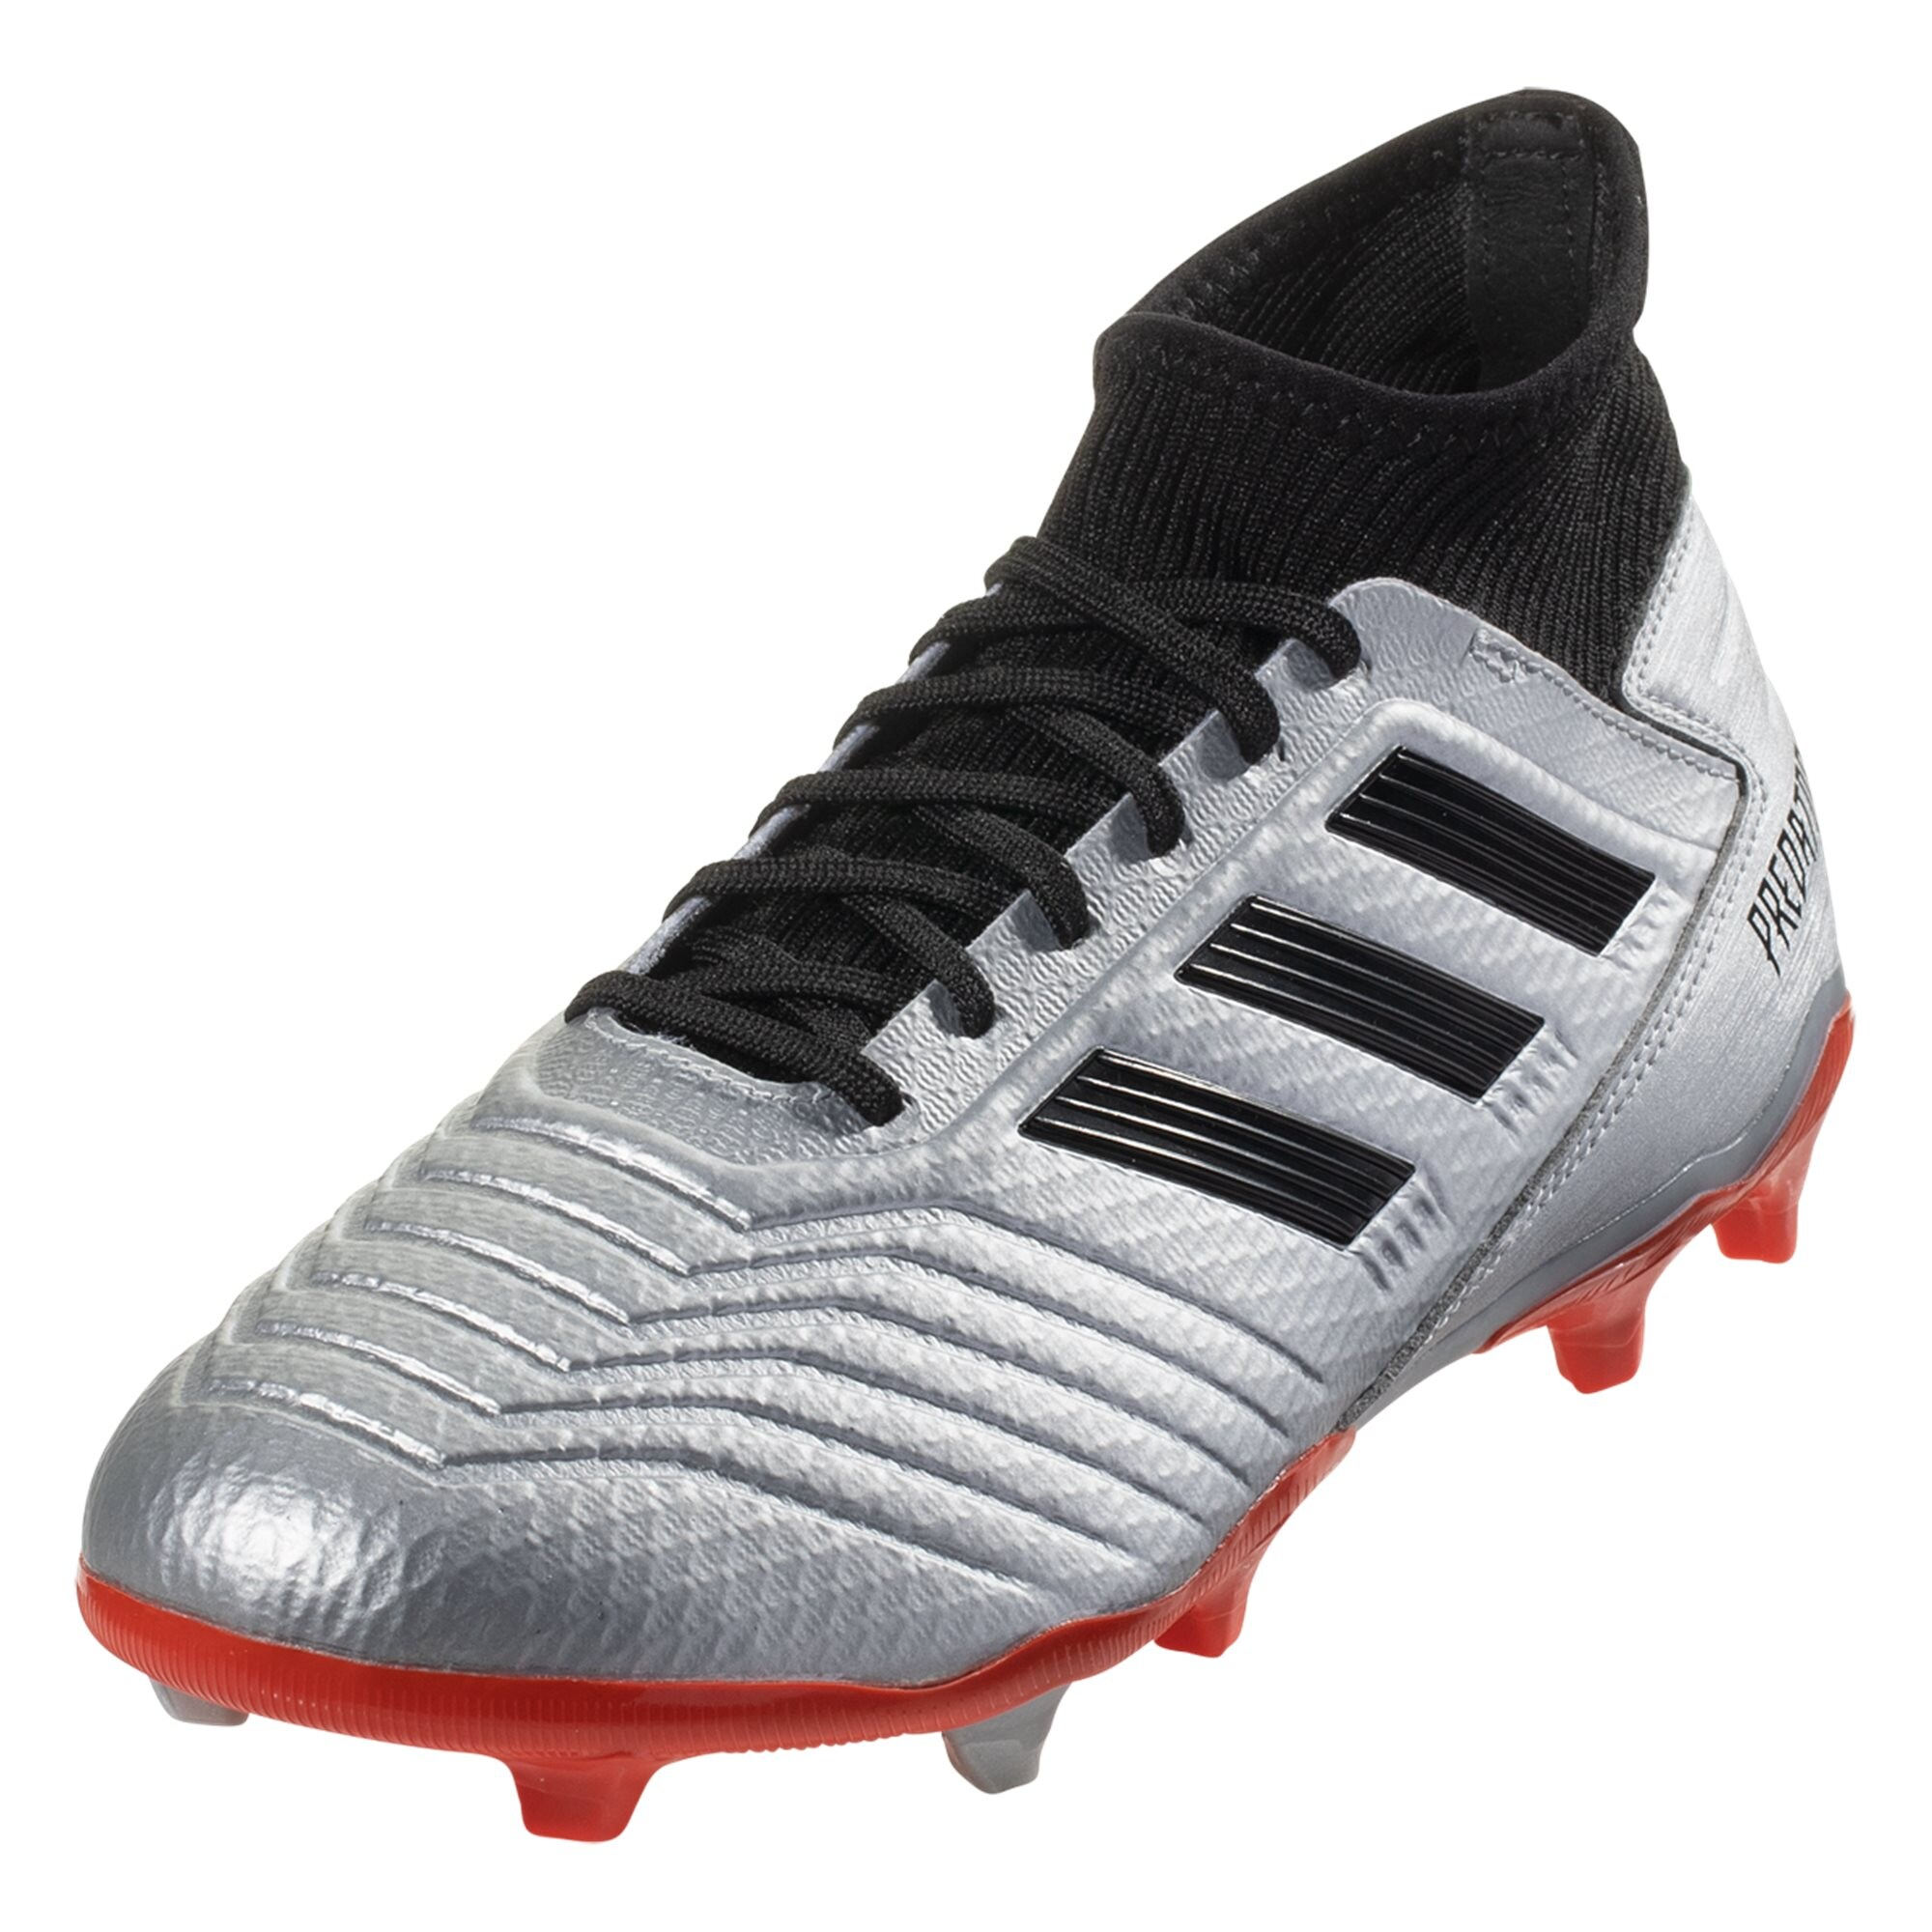 adidas Predator 19.3 FG Soccer Cleat - Metallic Silver / Black / Hi-Res Red